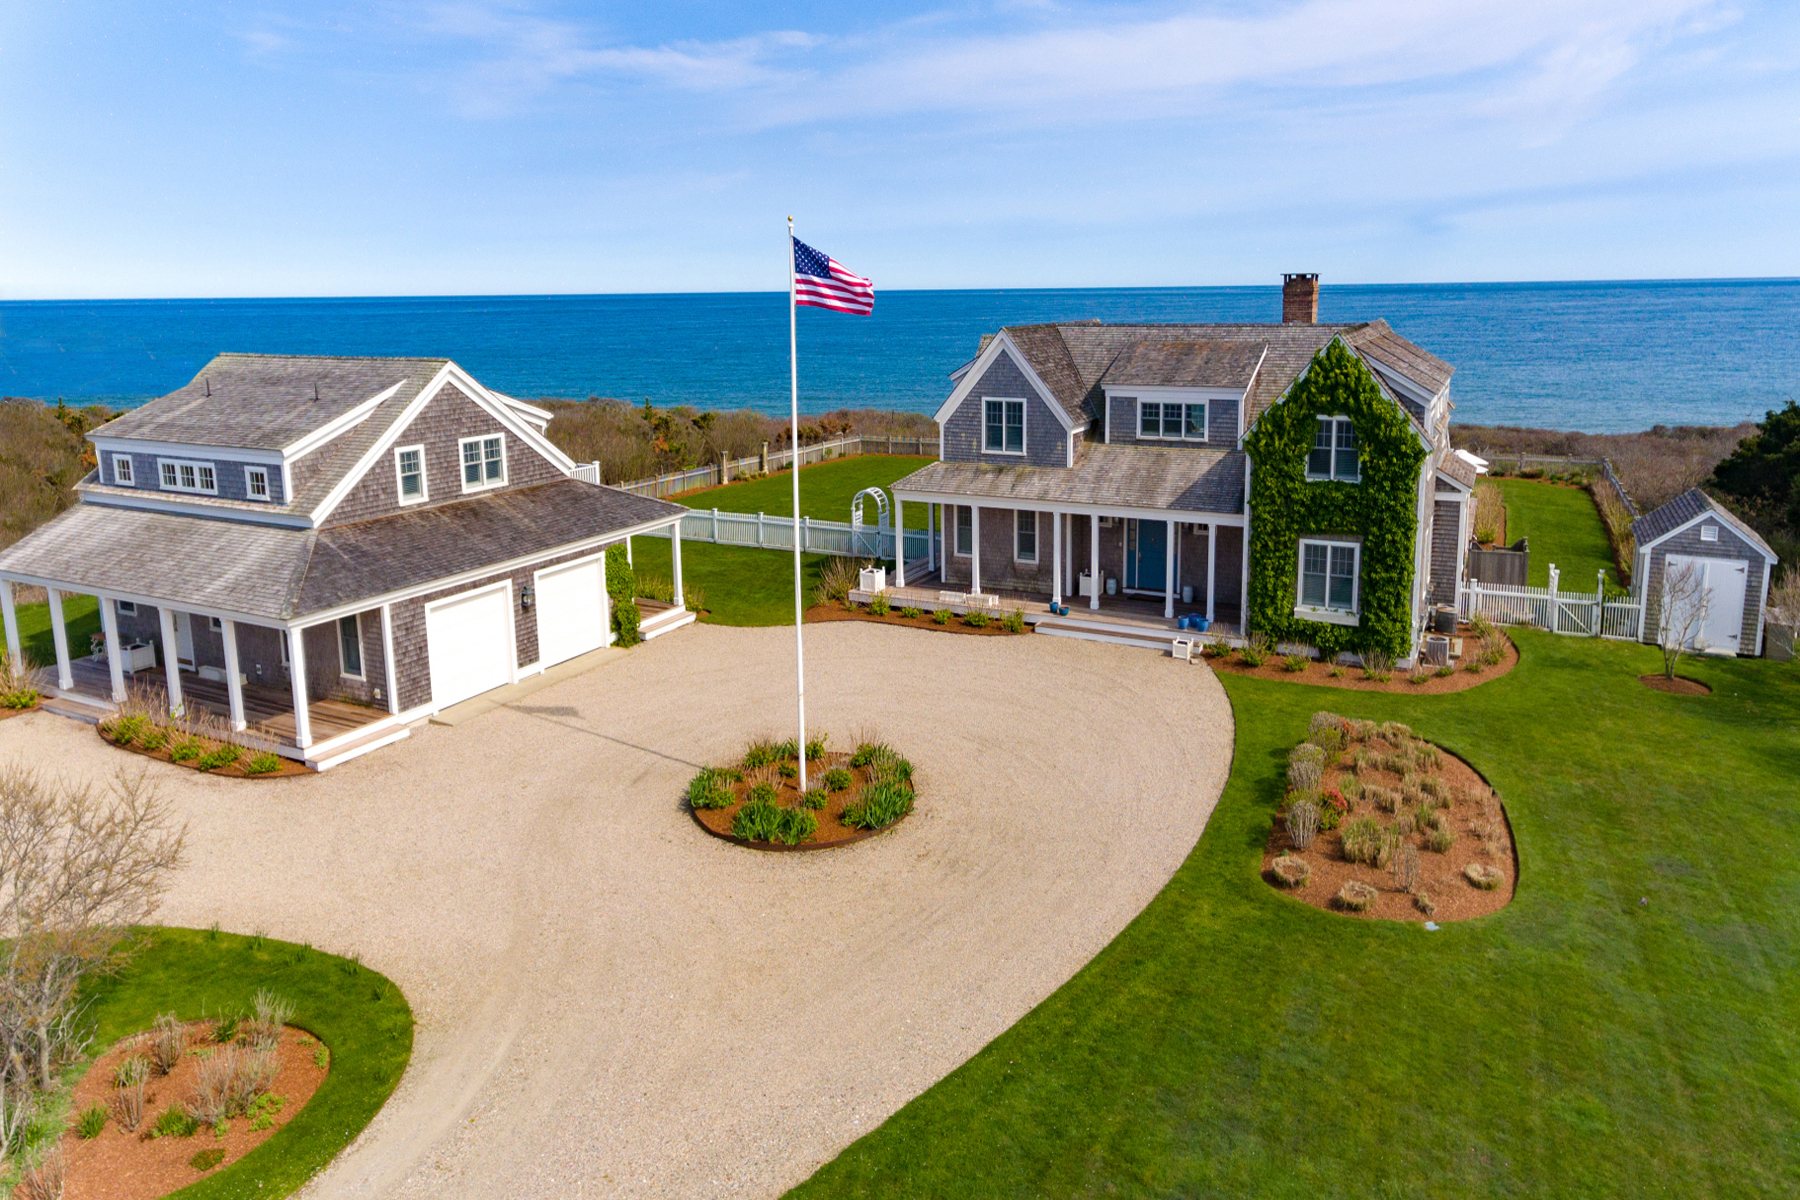 Single Family Homes for Active at Oceanfront 98 Tom Nevers Road Nantucket, Massachusetts 02554 United States